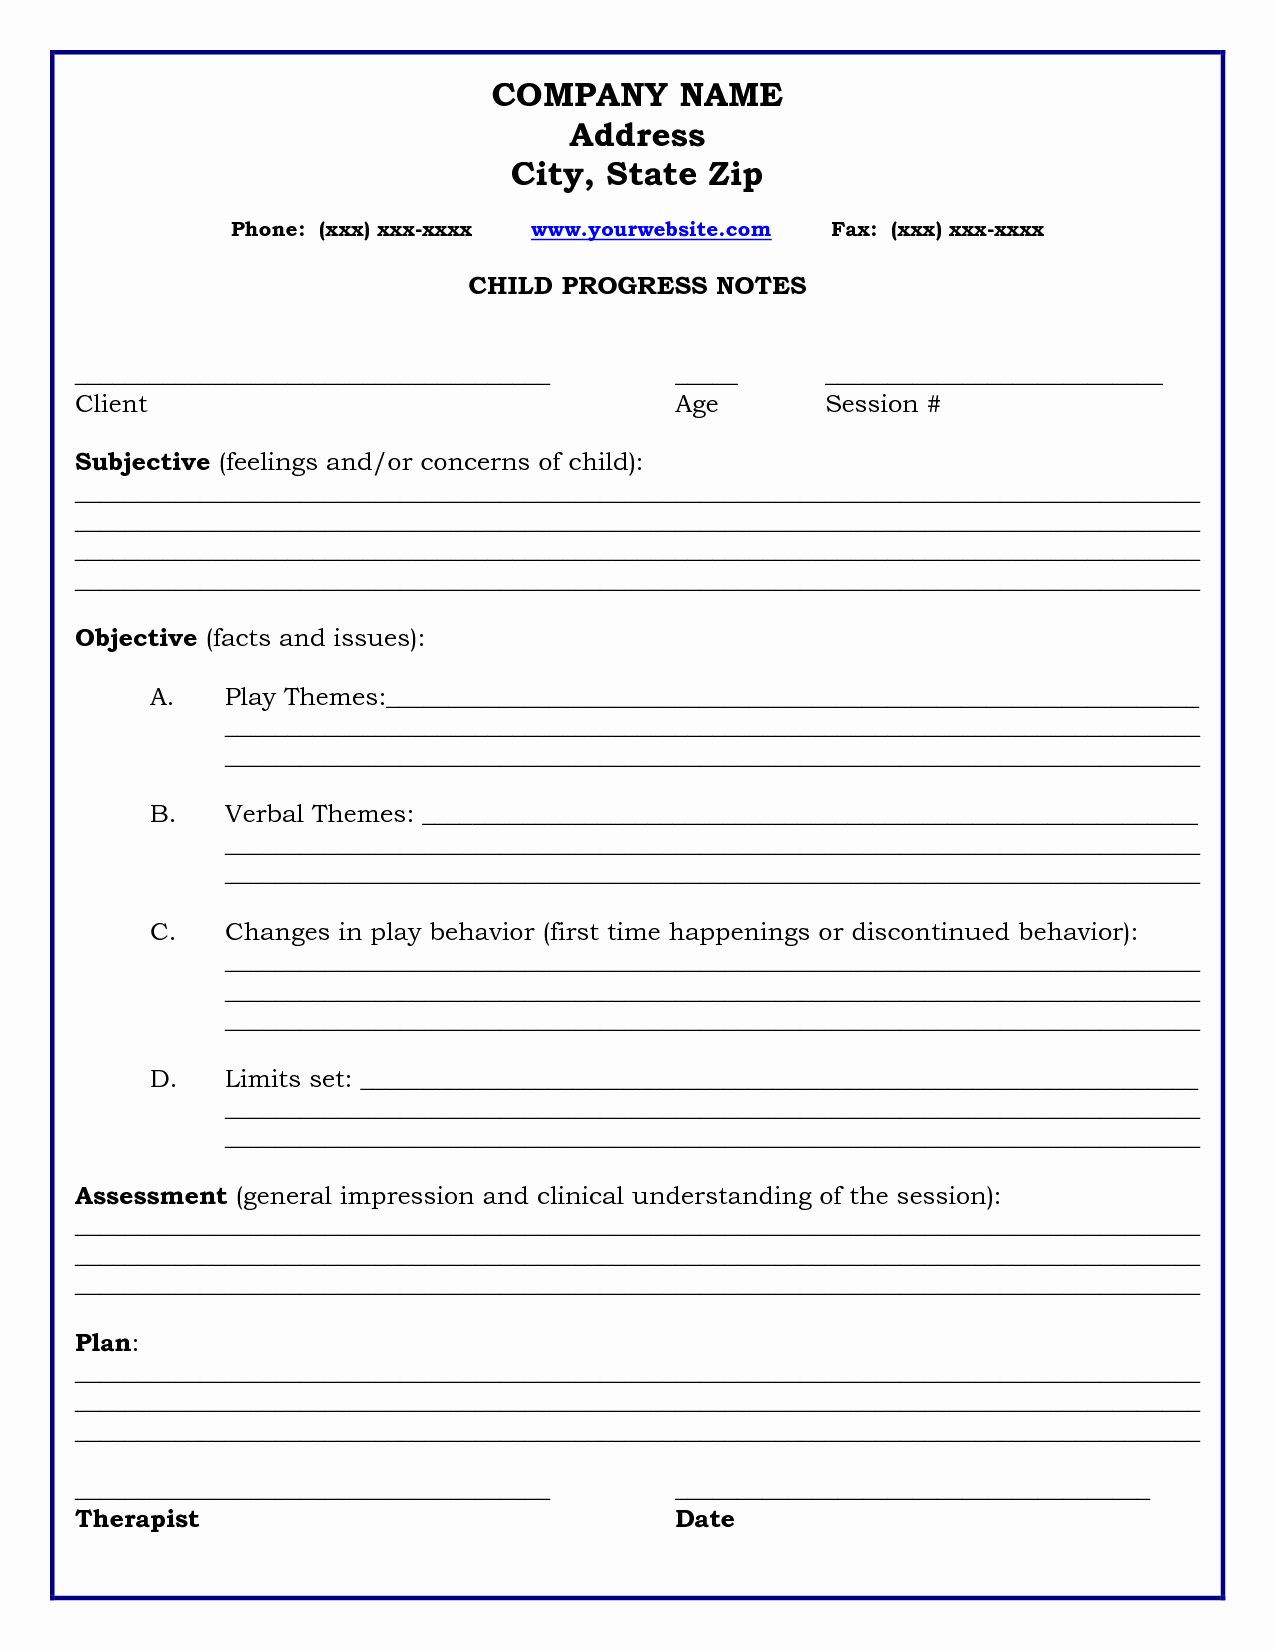 Client Notes Template Beautiful Therapy Progress Note